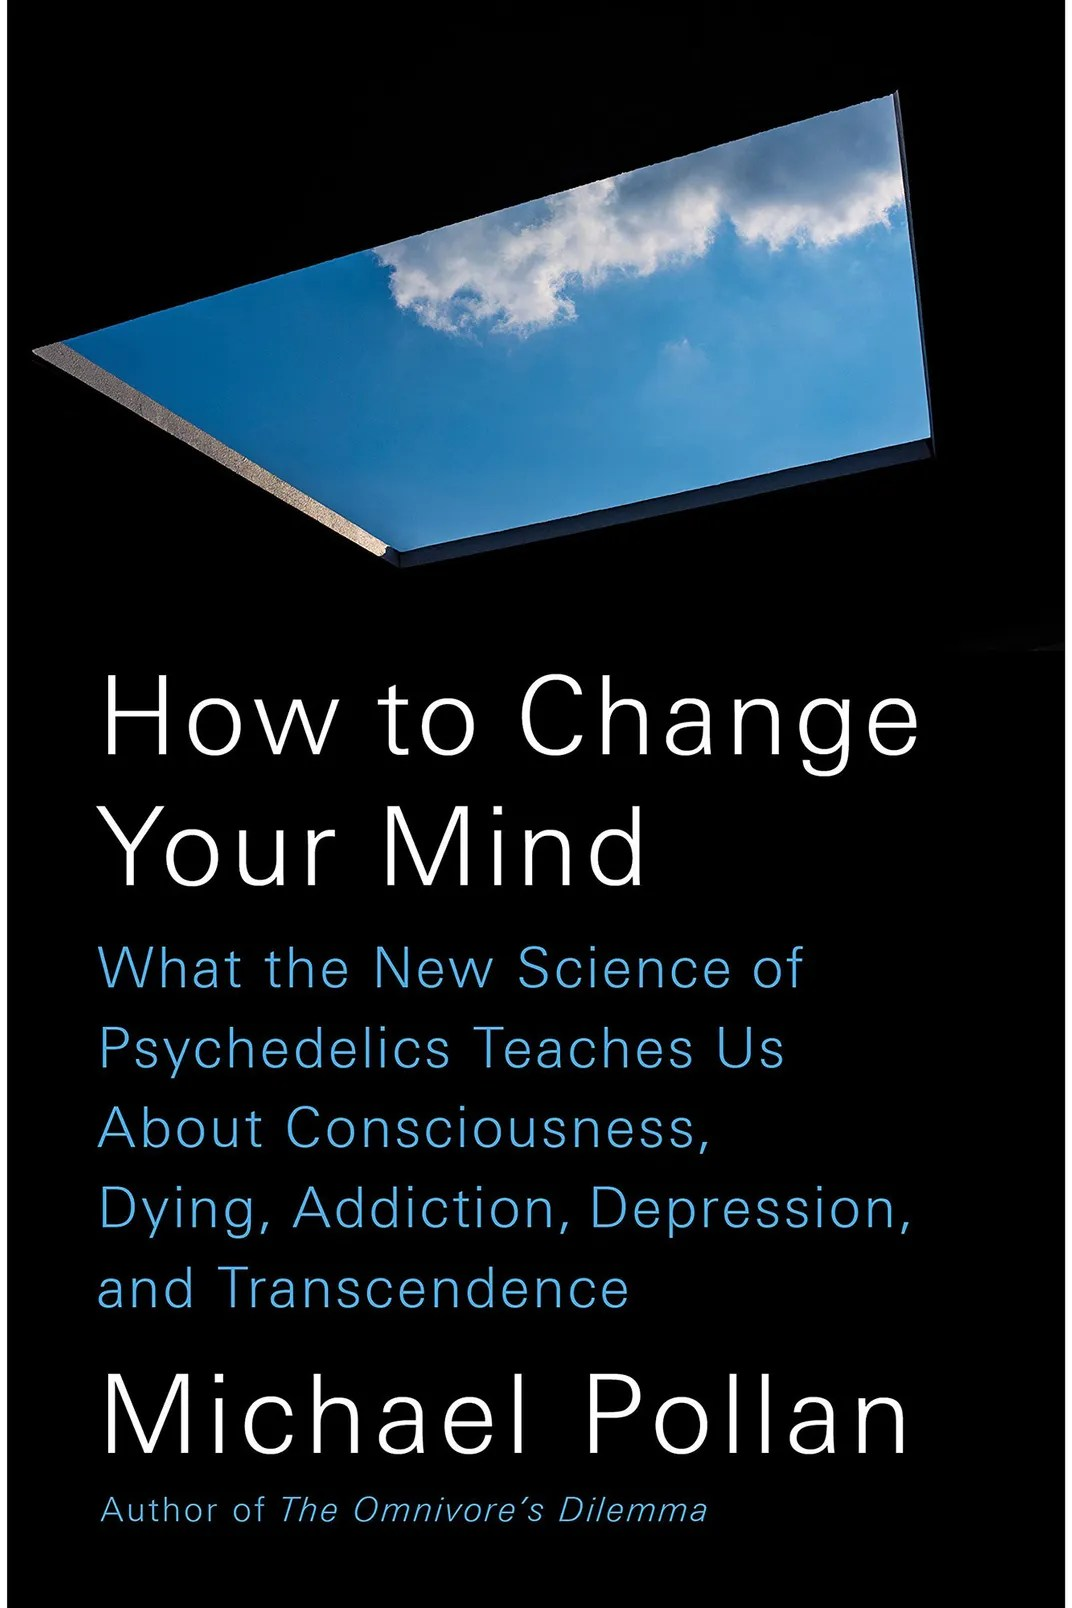 <em>How to Change Your Mind</em>, by Michael Pollan